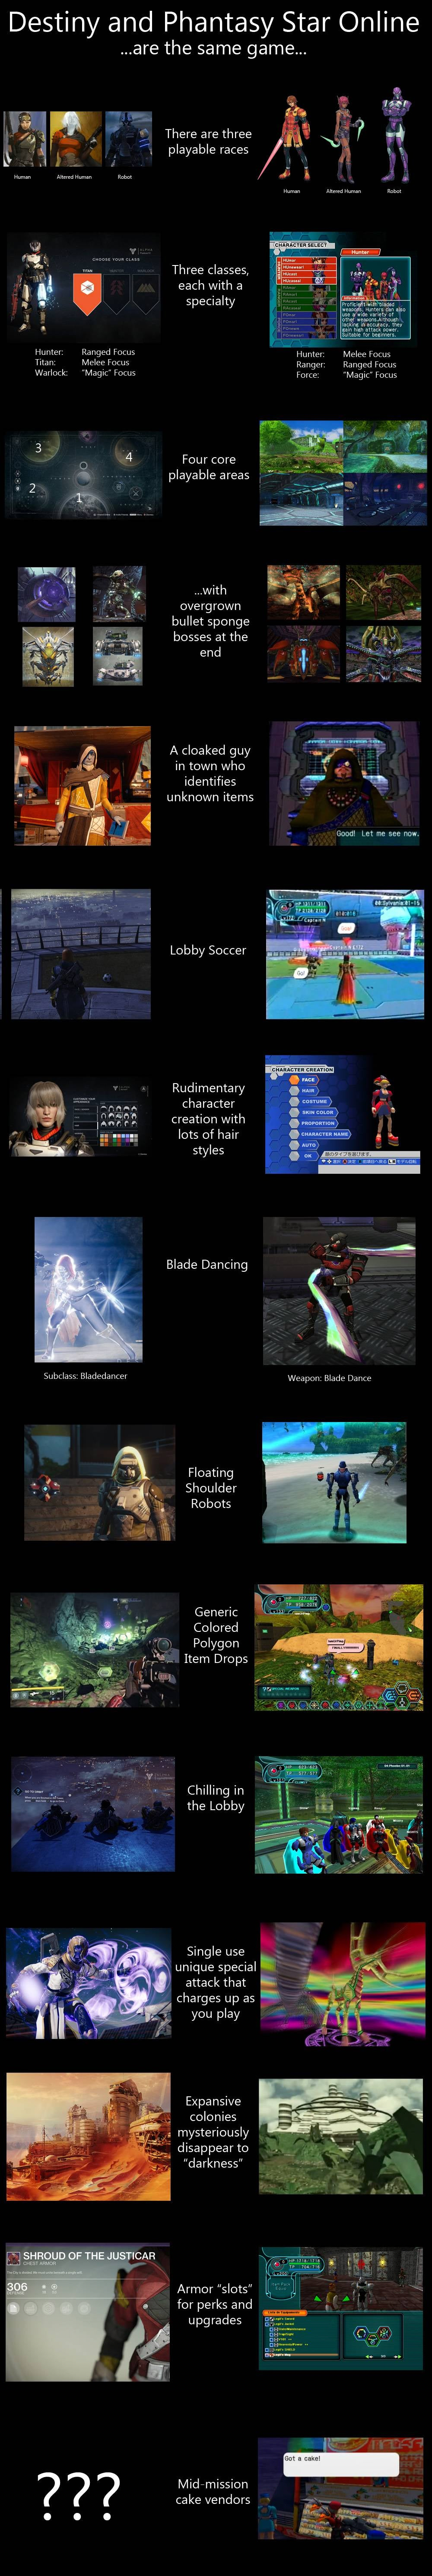 Destiny And Phantasy Star Online Have An Awful Lot In Common